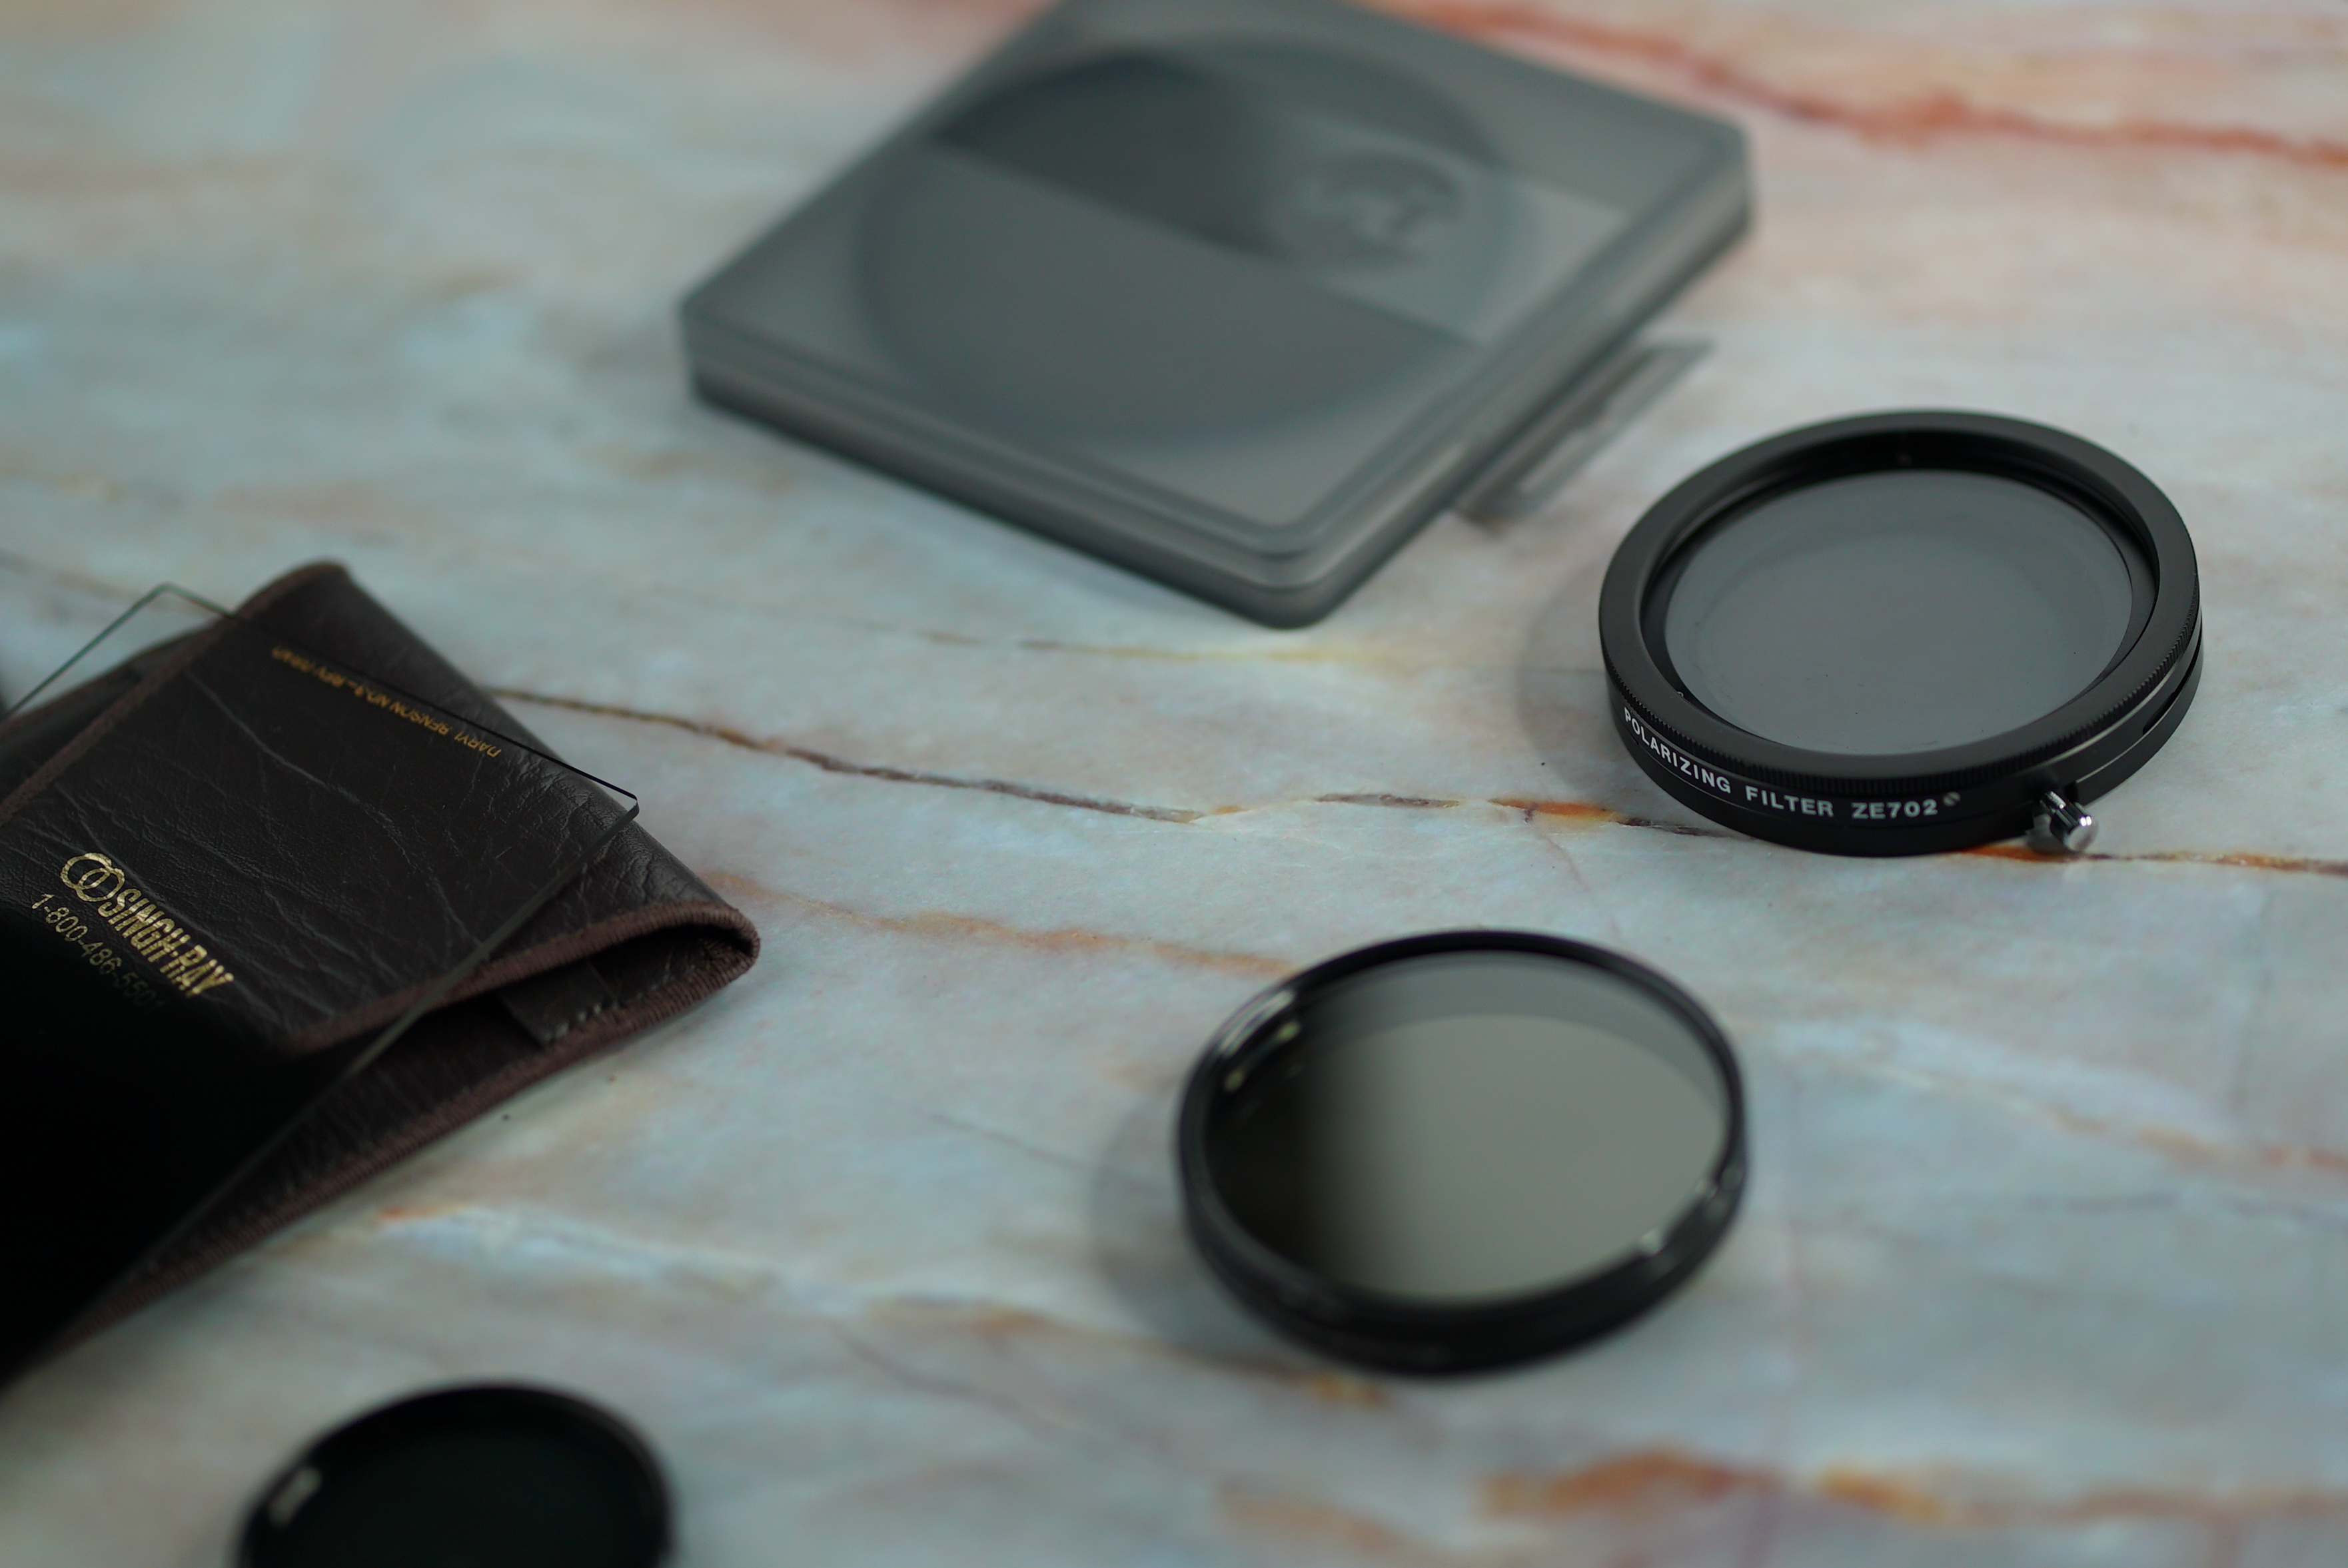 Lens Filters Explained: ND Filters And Polarizers